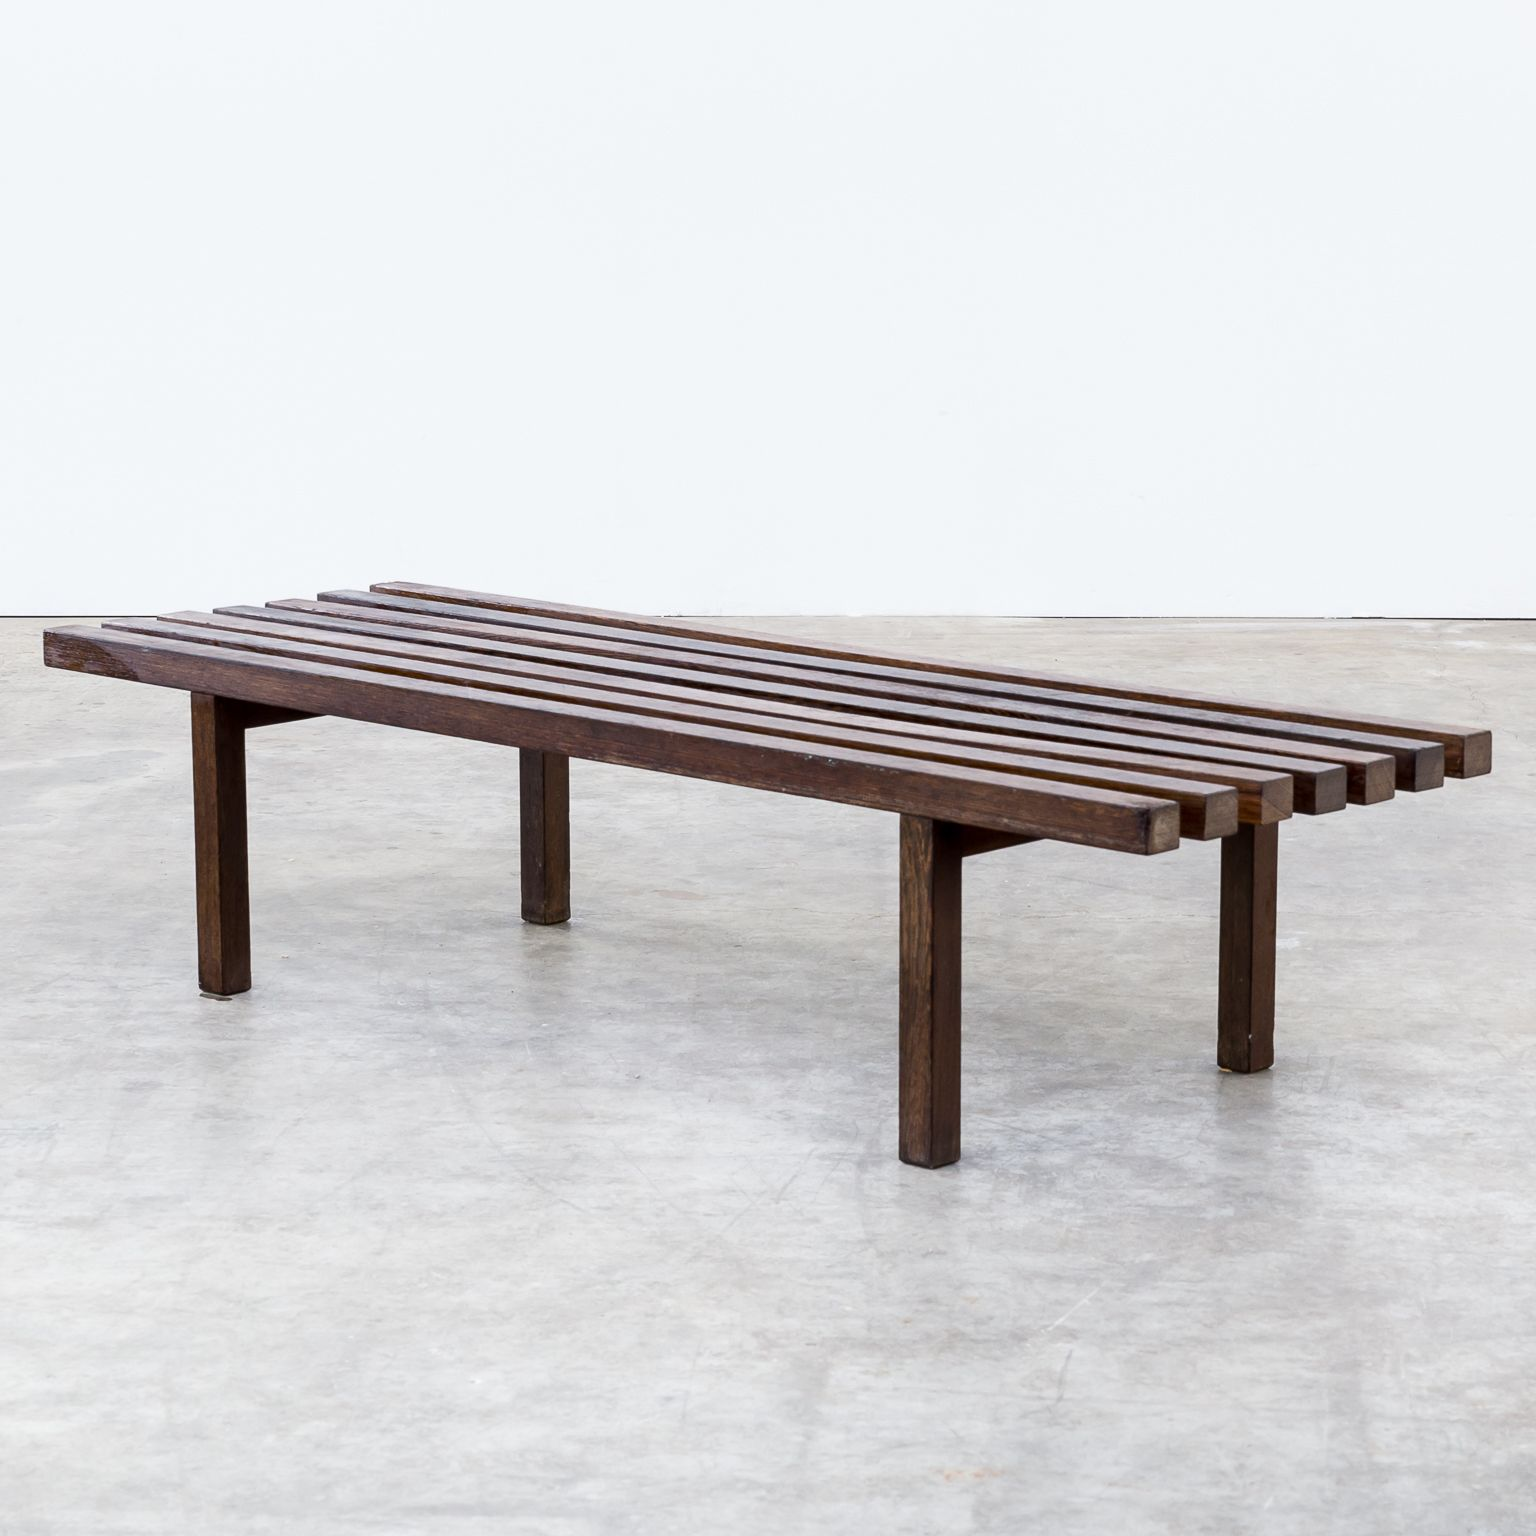 60S Weng Slatted Bench, Museum Bench